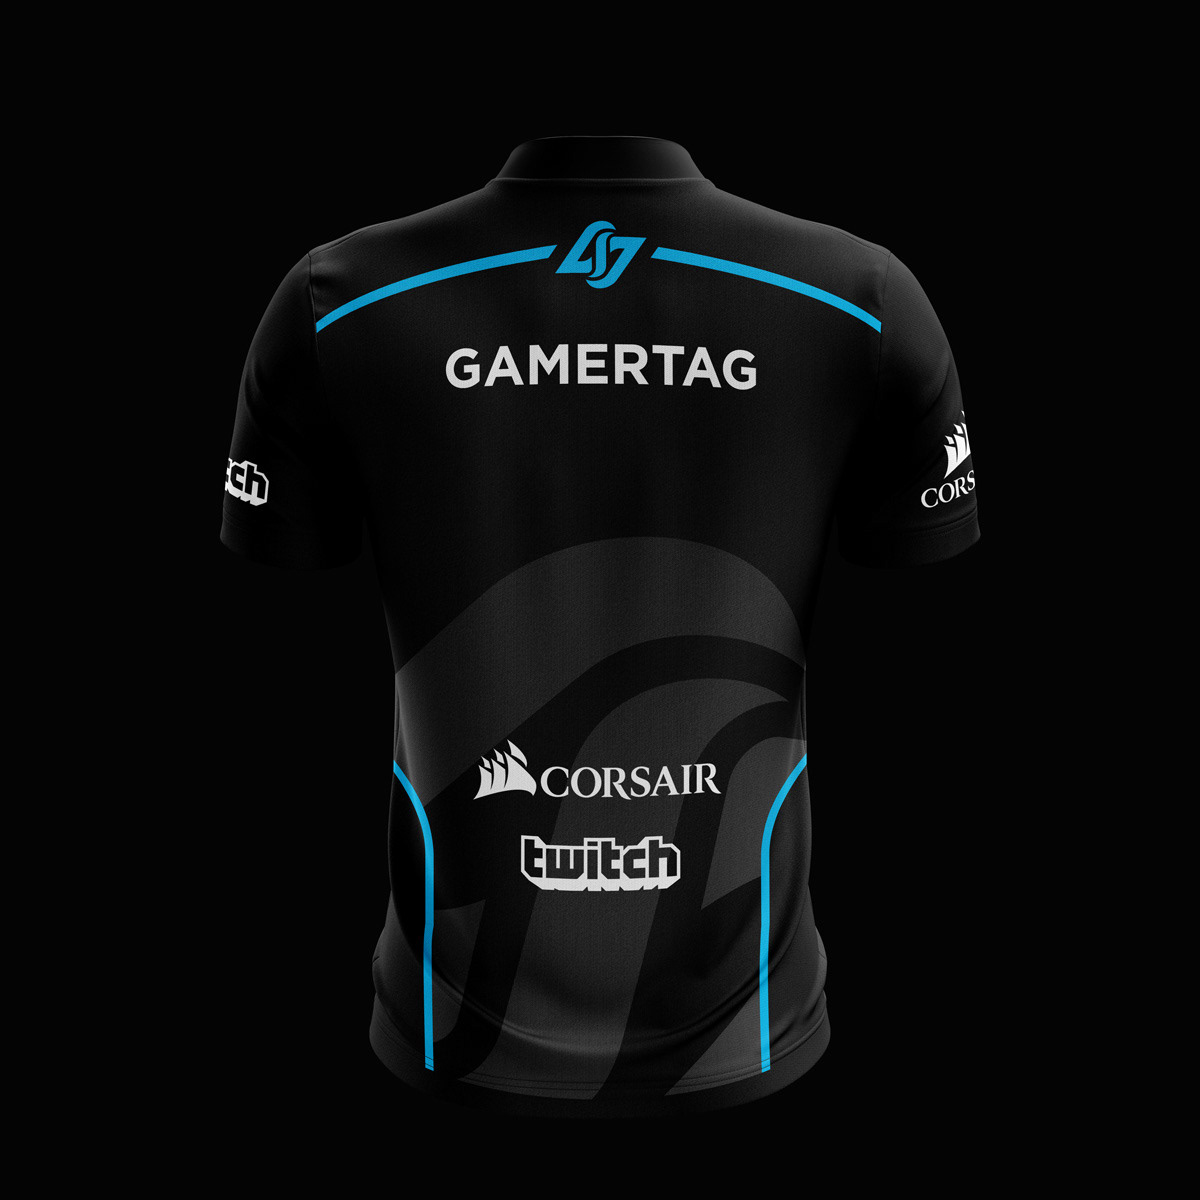 CLG Jersey 2018/2019 on Behance